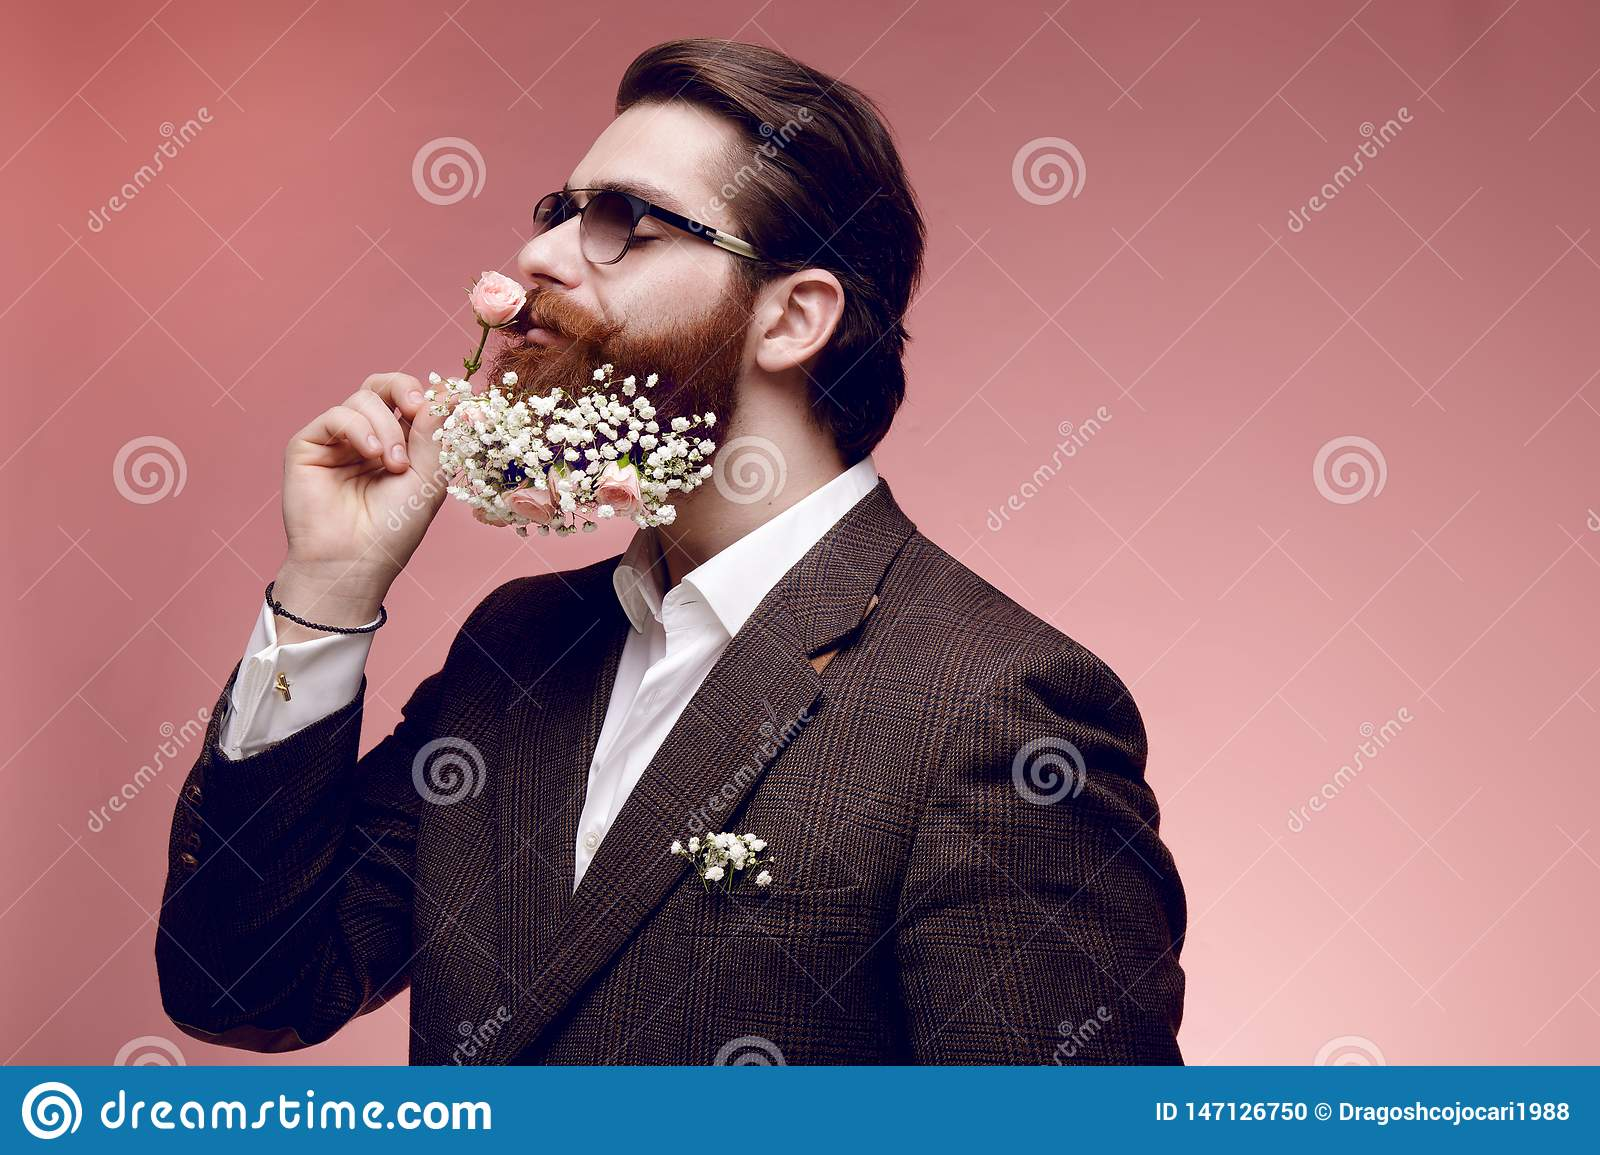 Portrait of a attractive brutal bearded man in sunglasses with flowers in beard, isolated on a dark pink background.